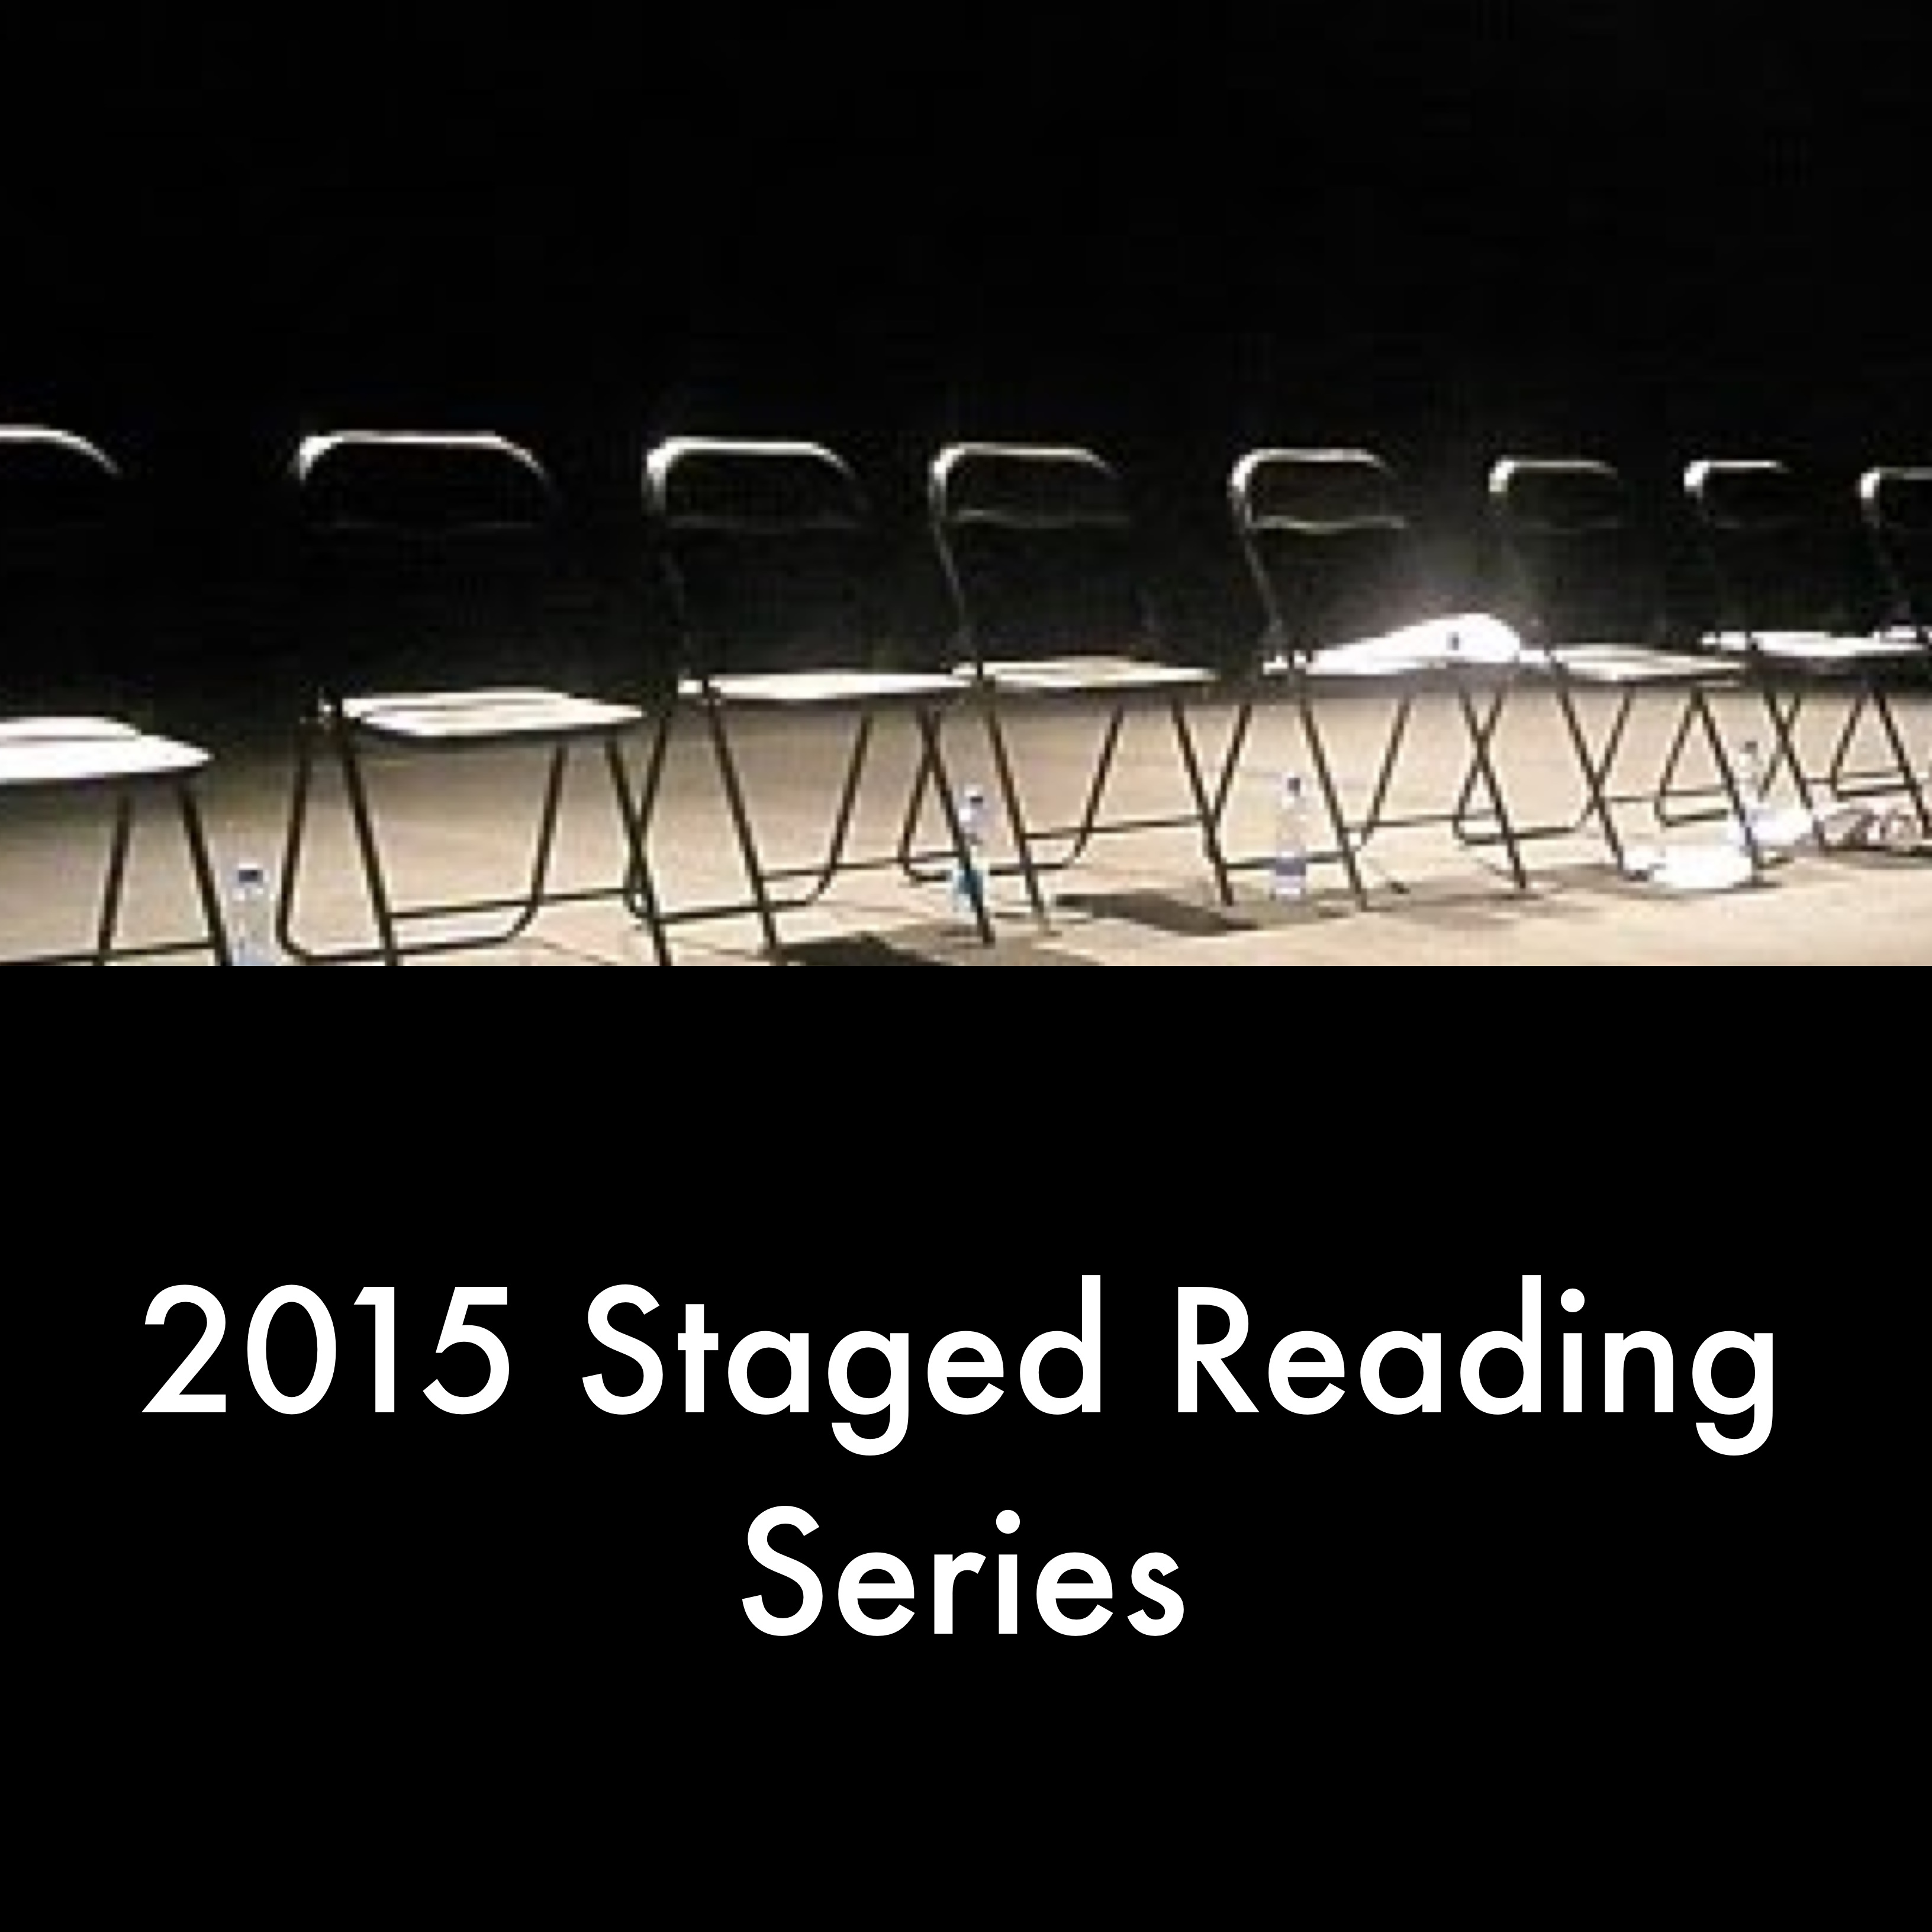 staged readings 2015 icon